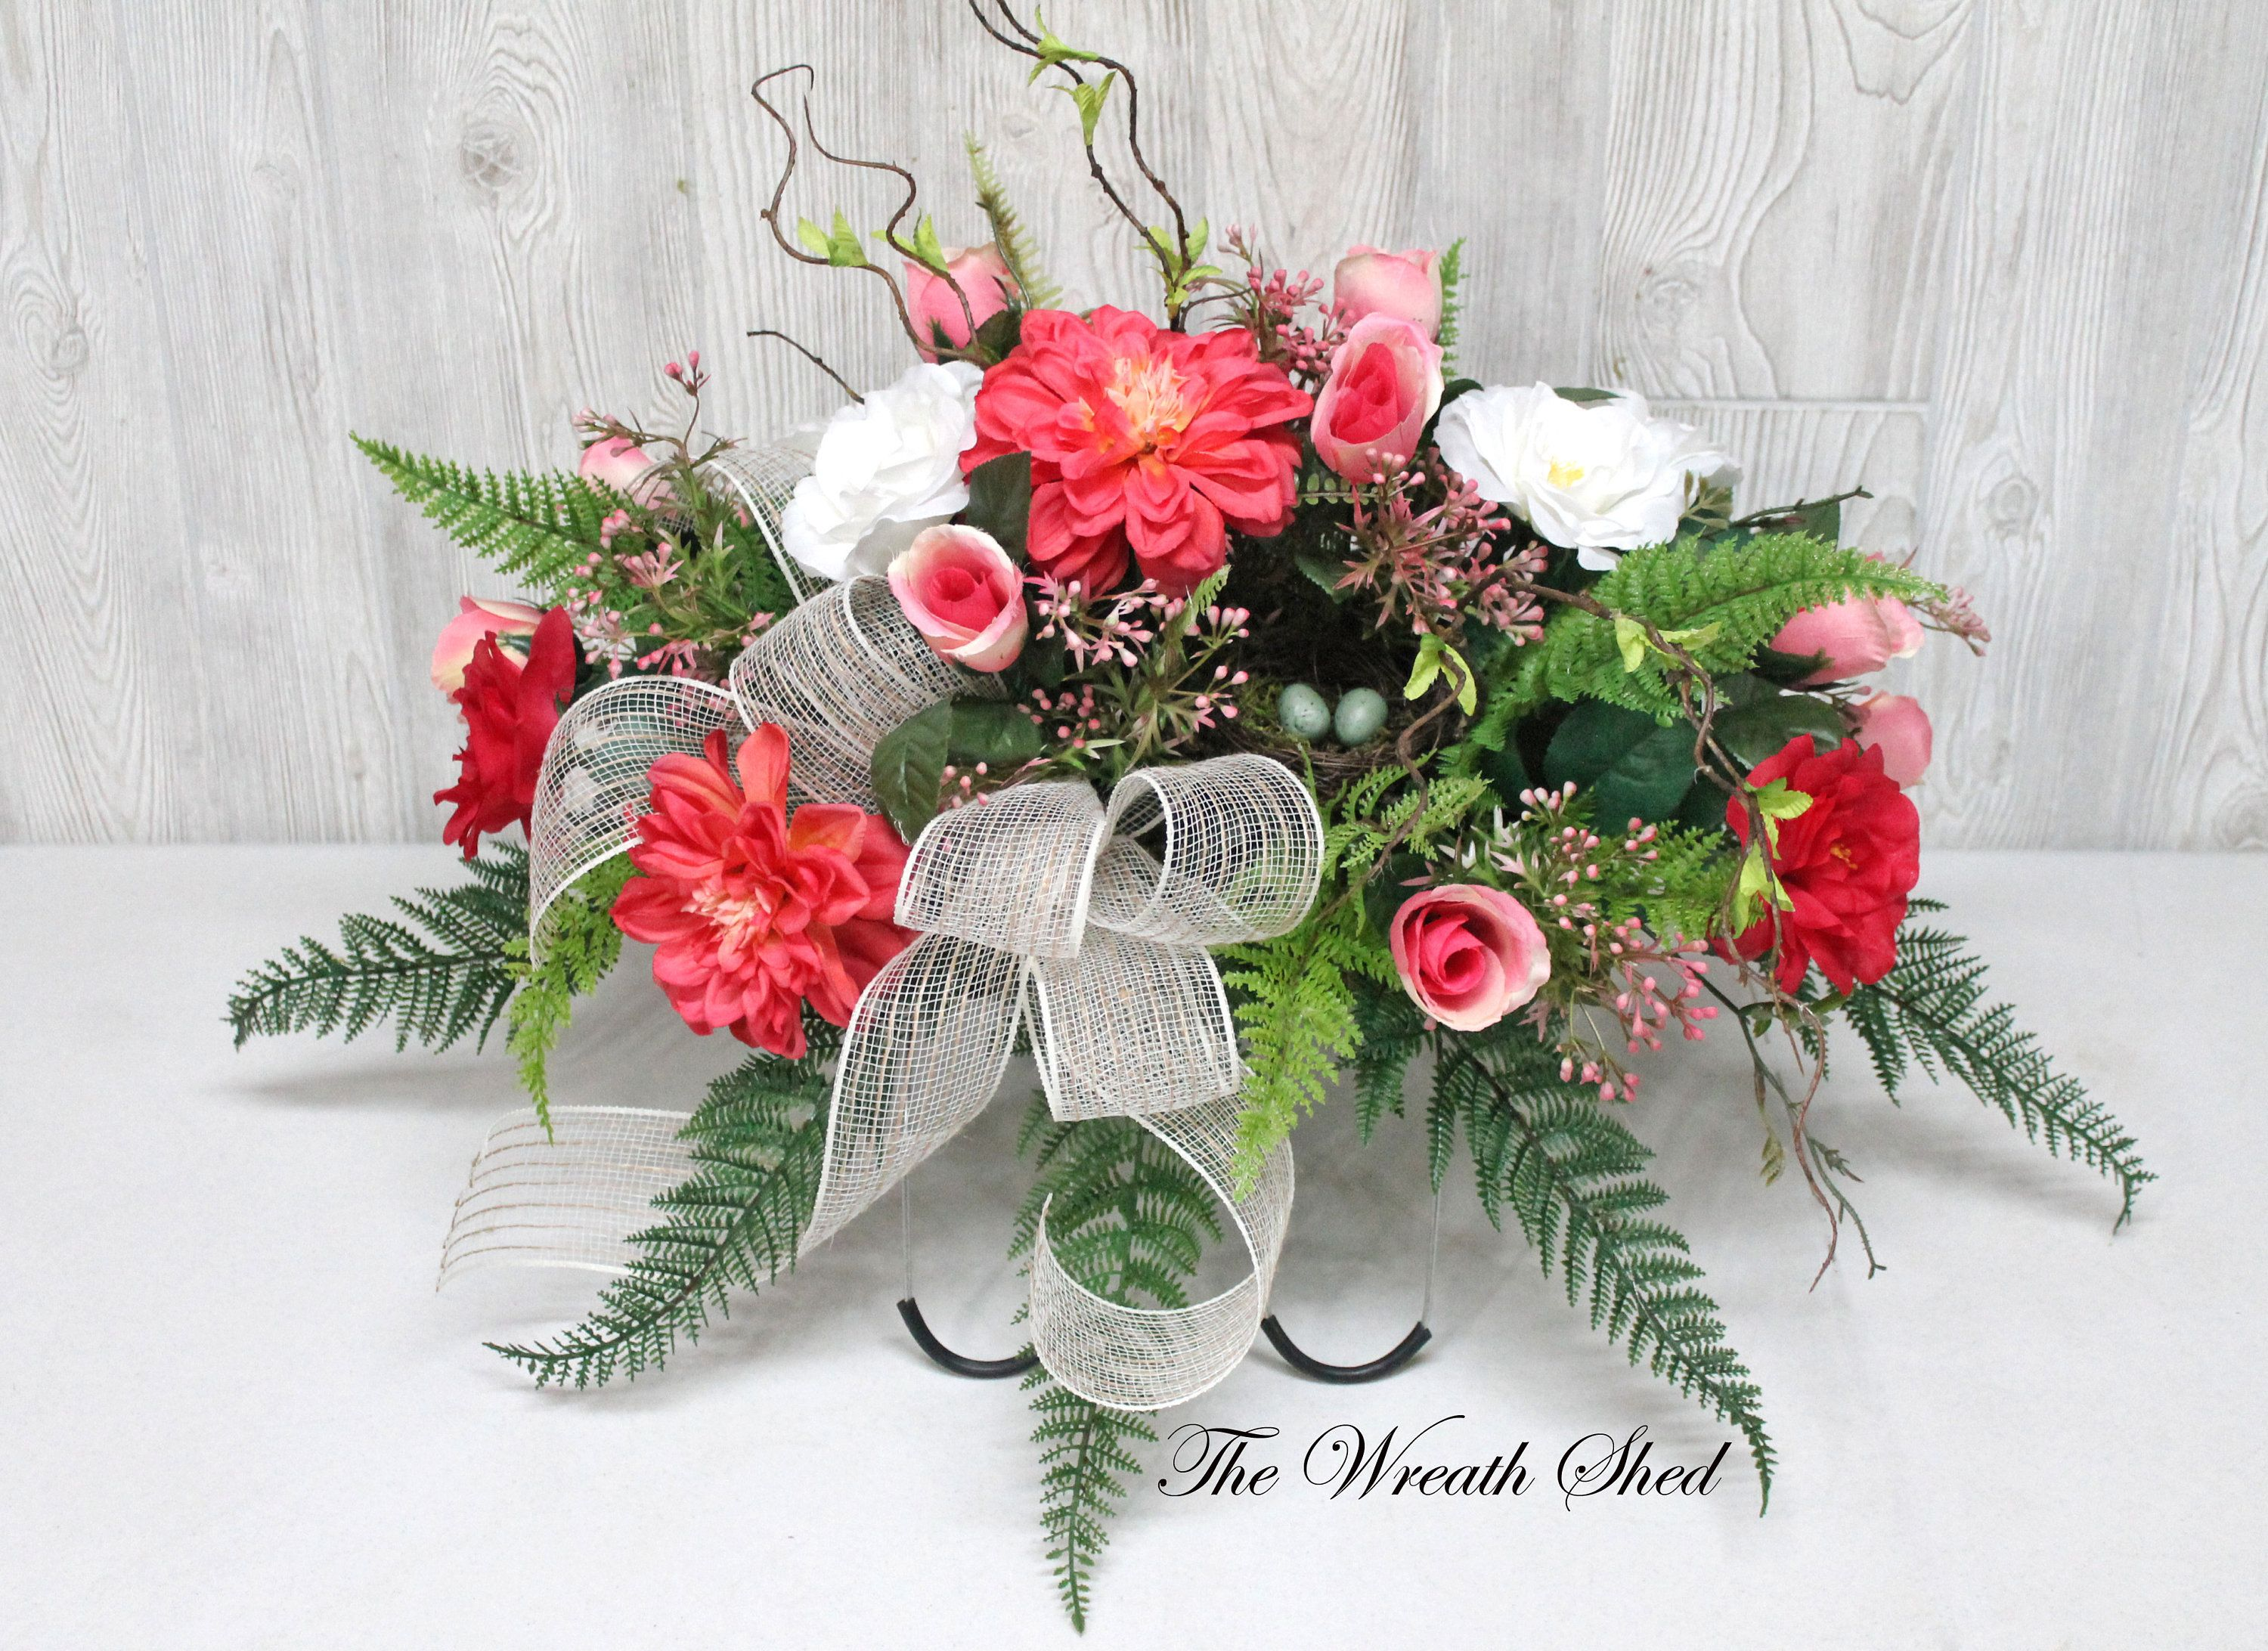 of decorations vase flower vases s products cemetery r memorial